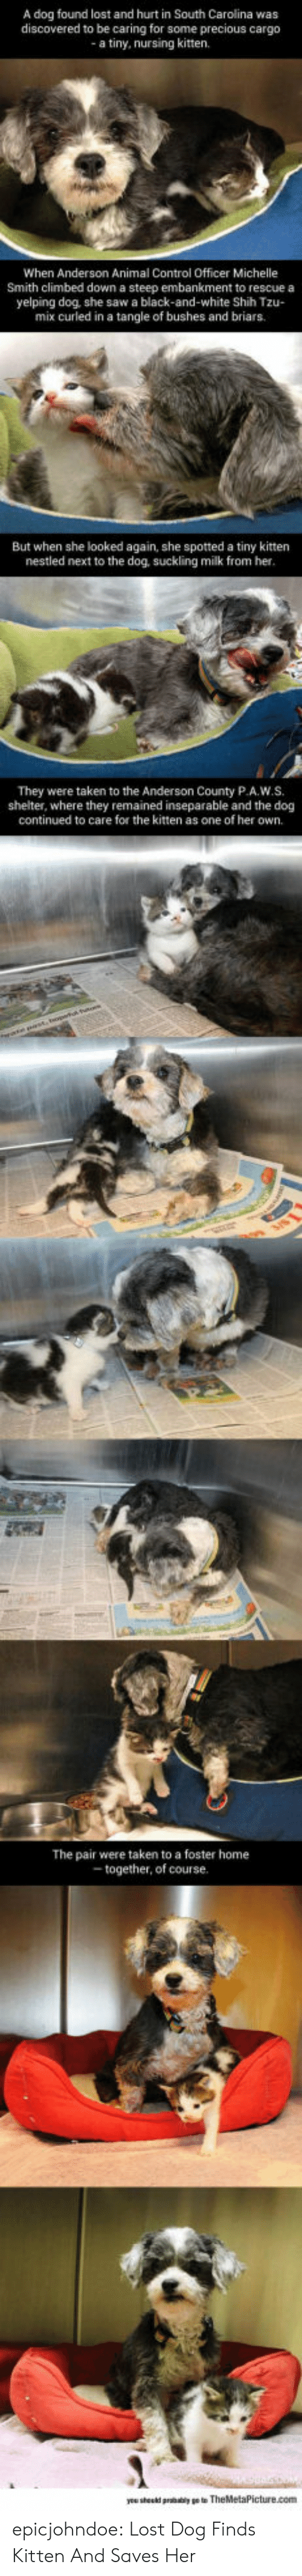 Nursing: A dog found lost and hurt in South Carolina was  discovered to be caring for some precious cargo  a tiny, nursing kitten.  When Anderson Animal Control Officer Michelle  Smith climbed down a steep embankment to rescue a  yelping dog, she saw a black-and-white Shih Tzu-  mix curled in a tangle of bushes and briars.  But when she looked again, she spotted a tiny kitten  nestled next to the dog, suckling milk from her  They were taken to the Anderson County P.A.W.S.  shelter, where they remained inseparable and the dog  continued to care for the kitten as one of her own.  The pair were taken to a foster home  together, of course epicjohndoe:  Lost Dog Finds Kitten And Saves Her